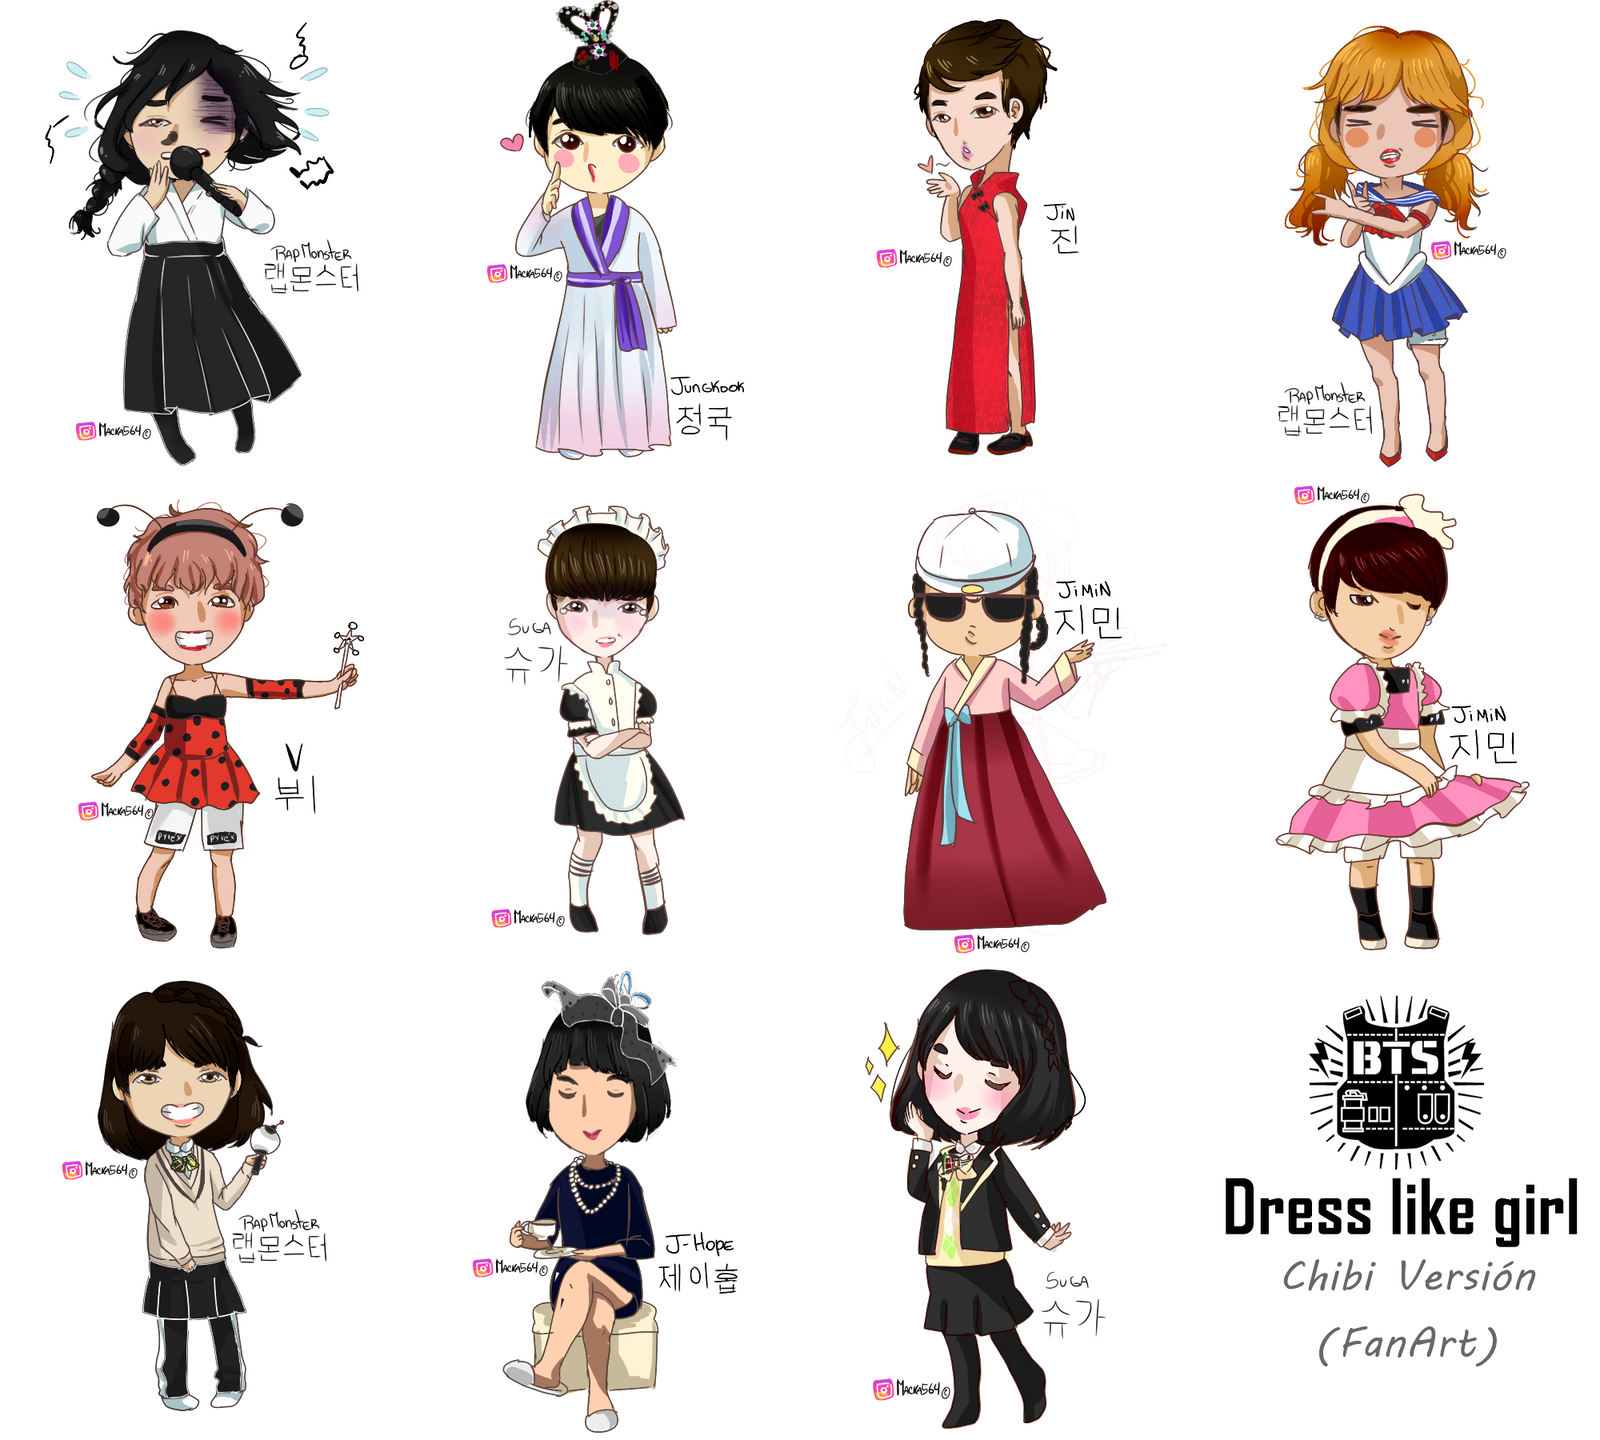 bts   dress like girl by aniiymackafiolee on deviantart